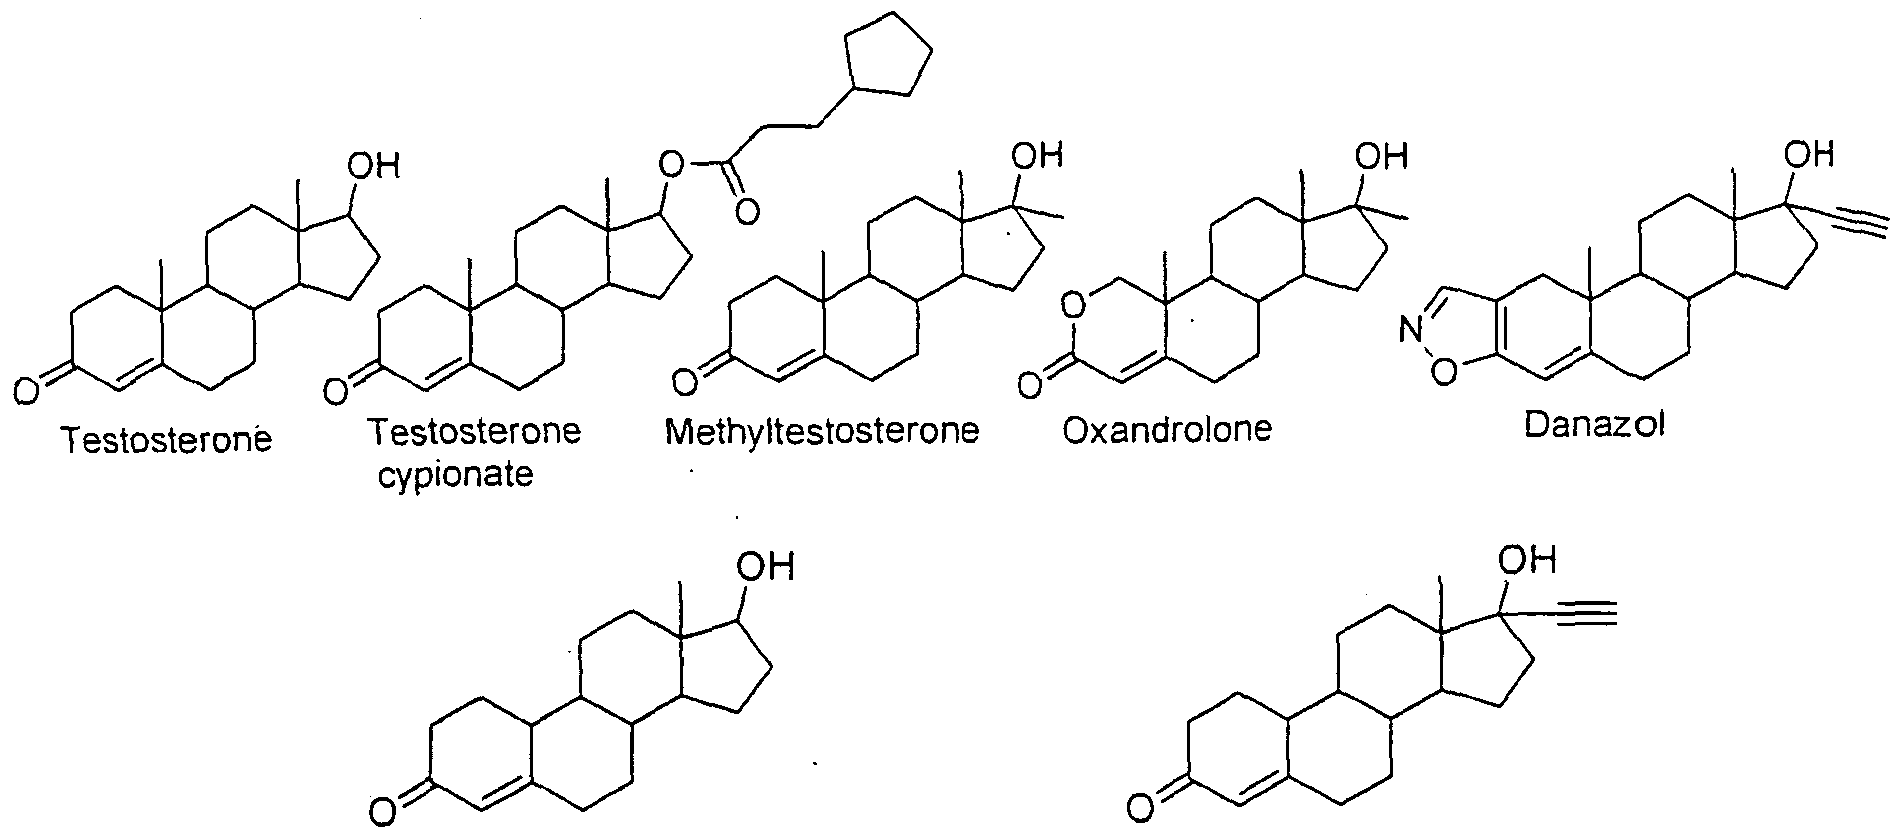 oxandrolone inflammation